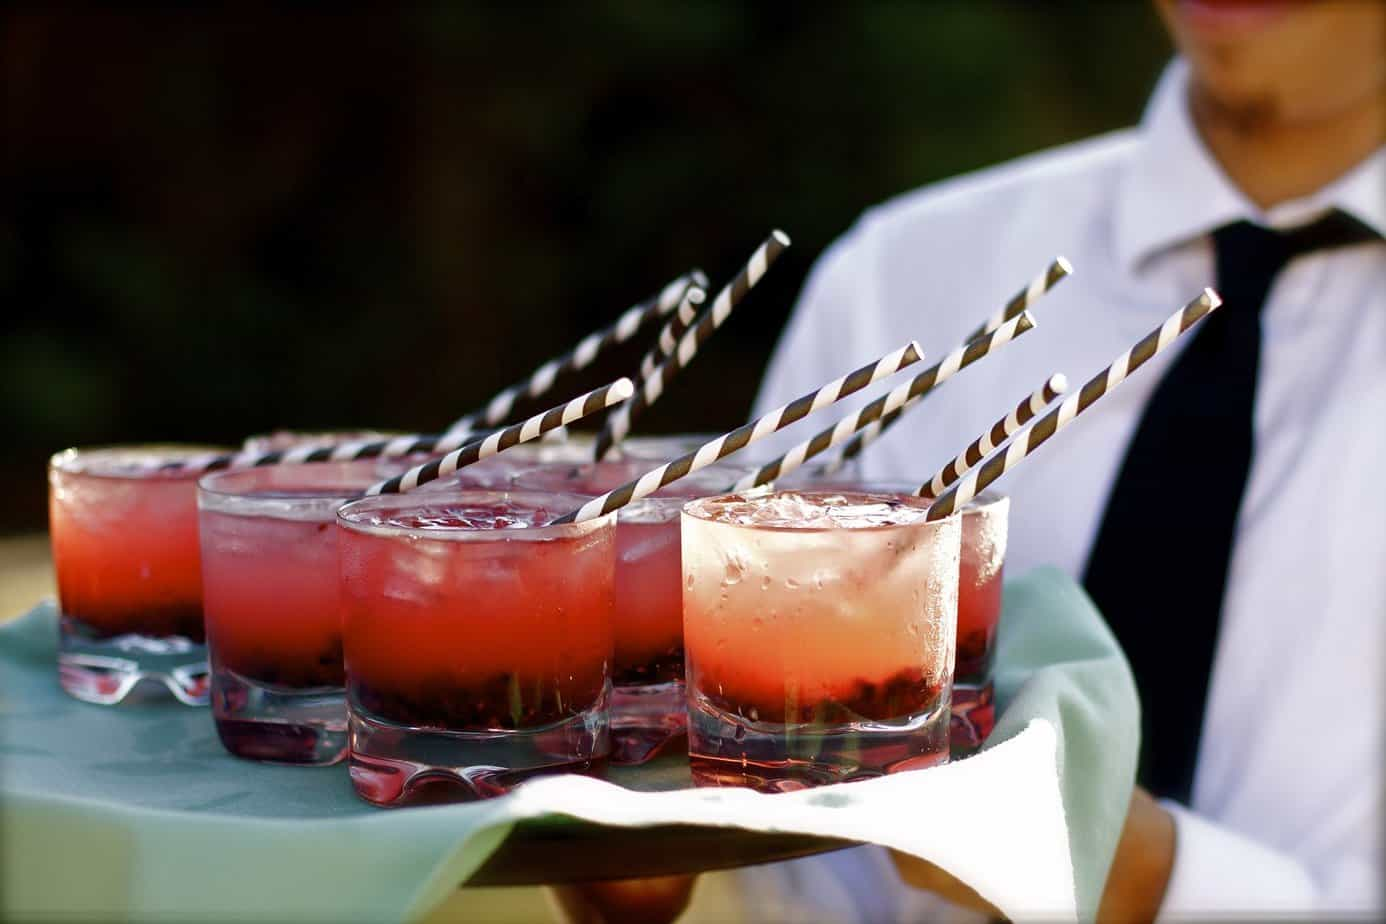 tray of cocktails with striped straws